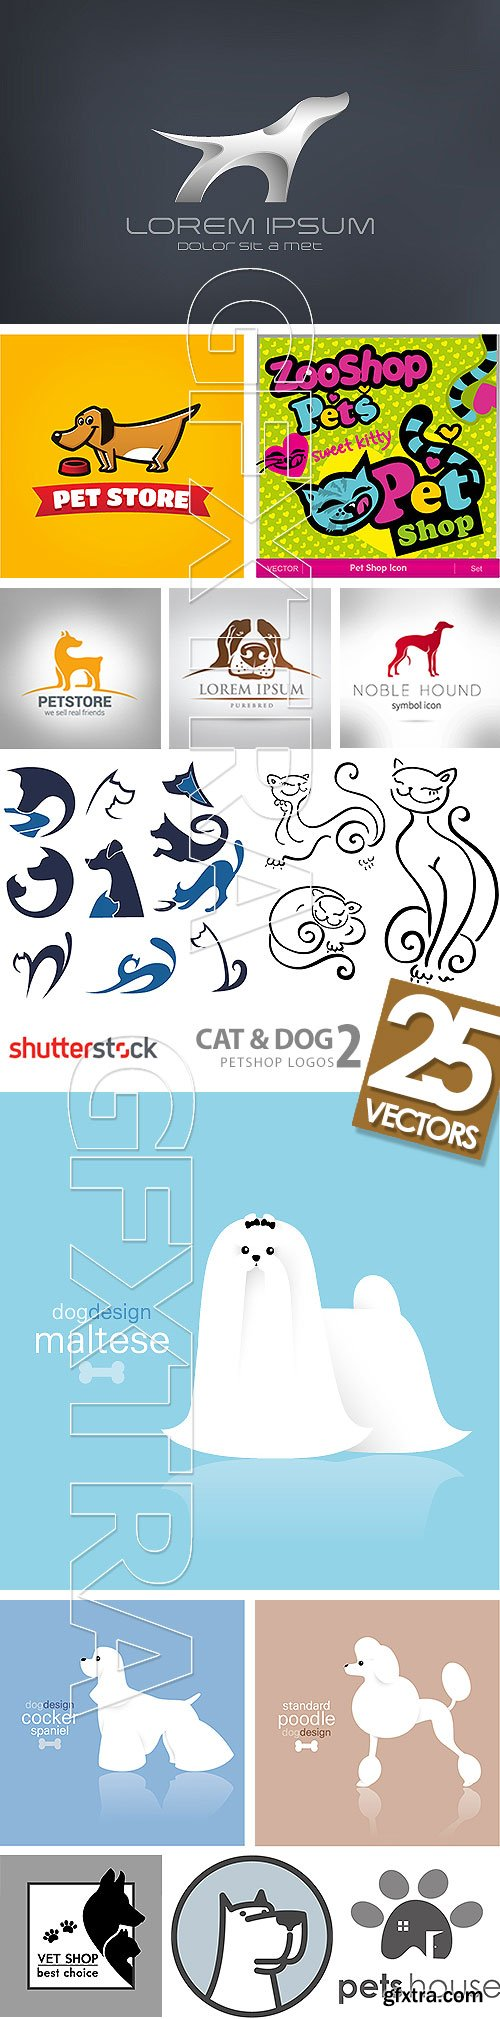 Cat & Dog Petshop Logos 2, 25xEPS